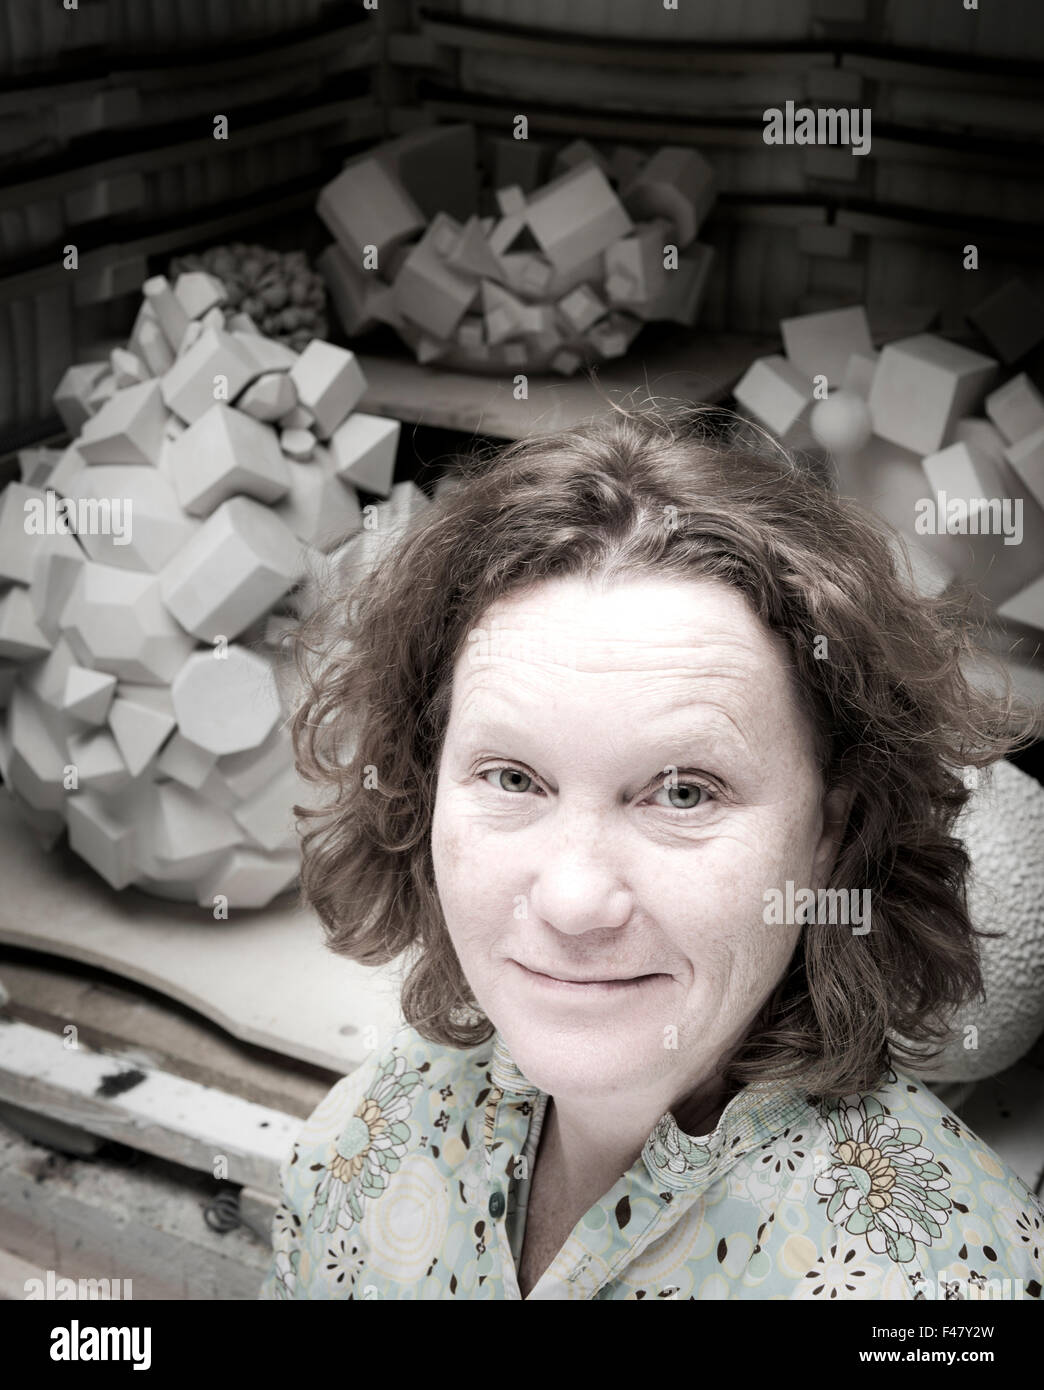 Ceramicist Kate Malone In Her Studio In Hackney London